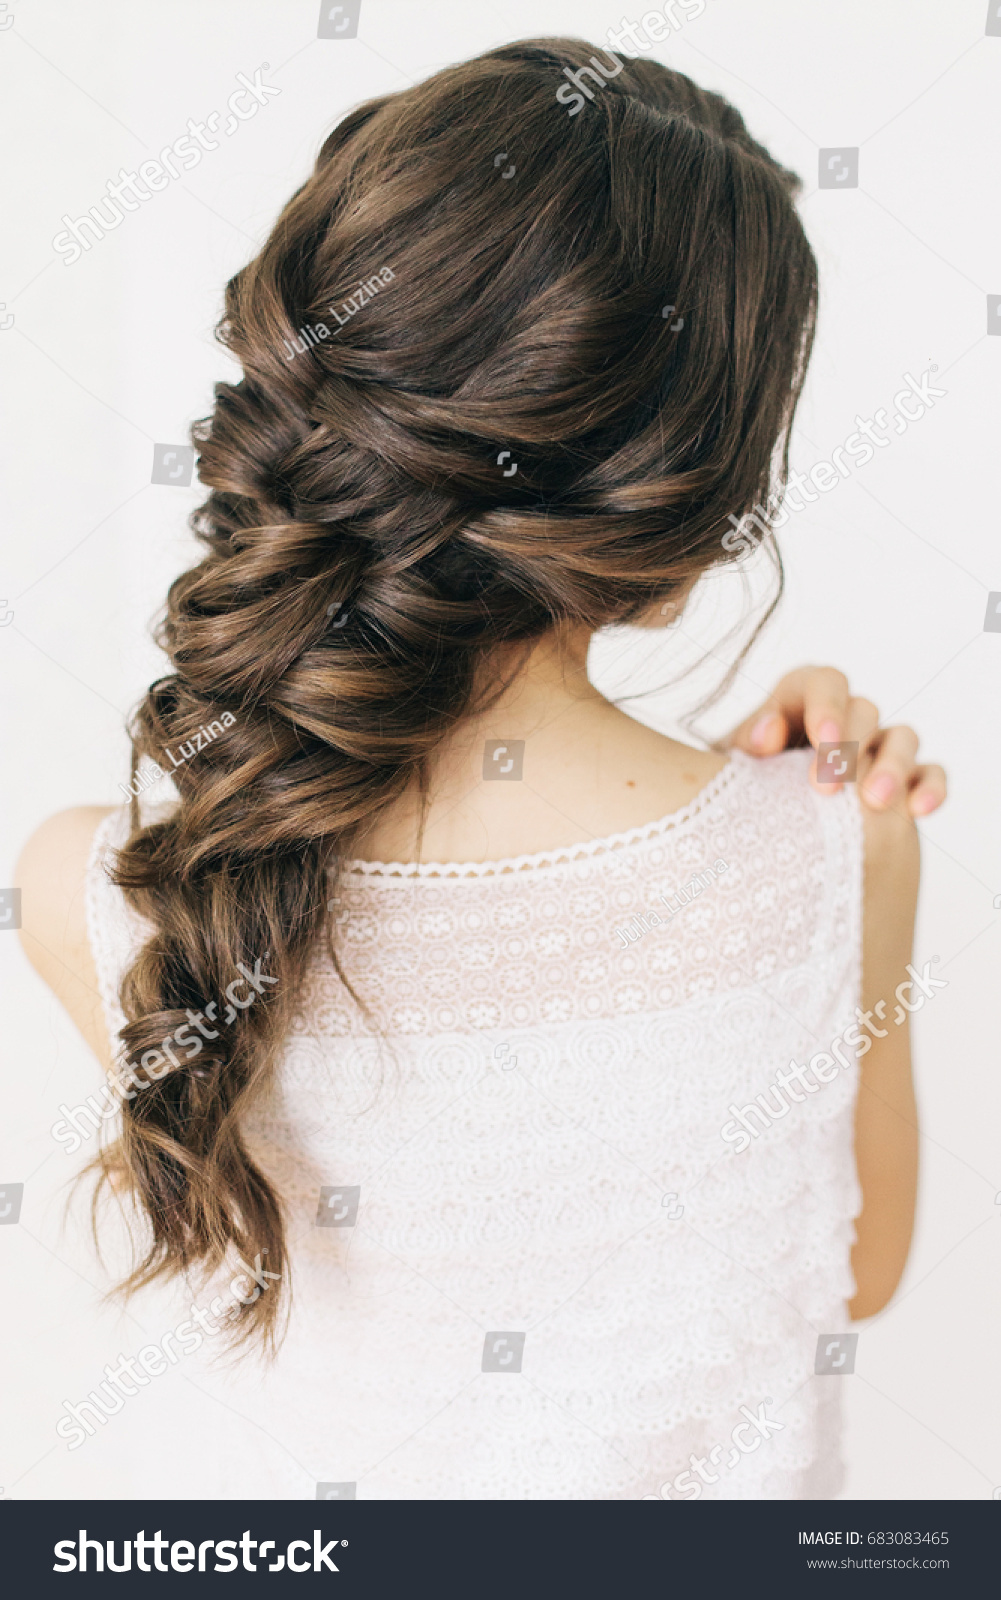 Outstanding Braided Hair Images Stock Photos Vectors Shutterstock Natural Hairstyles Runnerswayorg